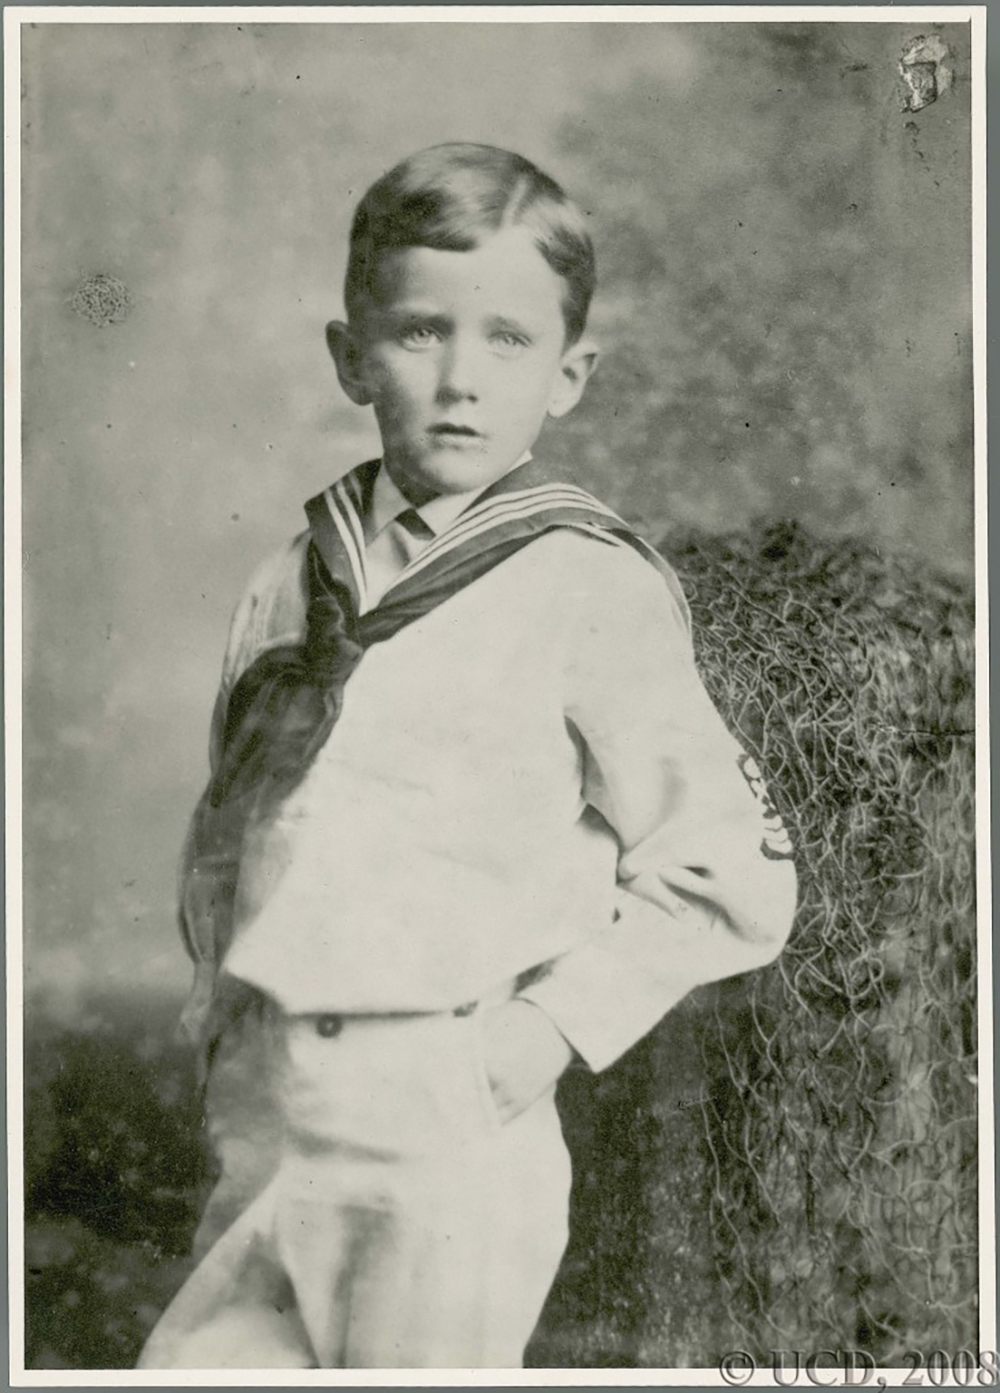 Photograph of James Joyce as a boy